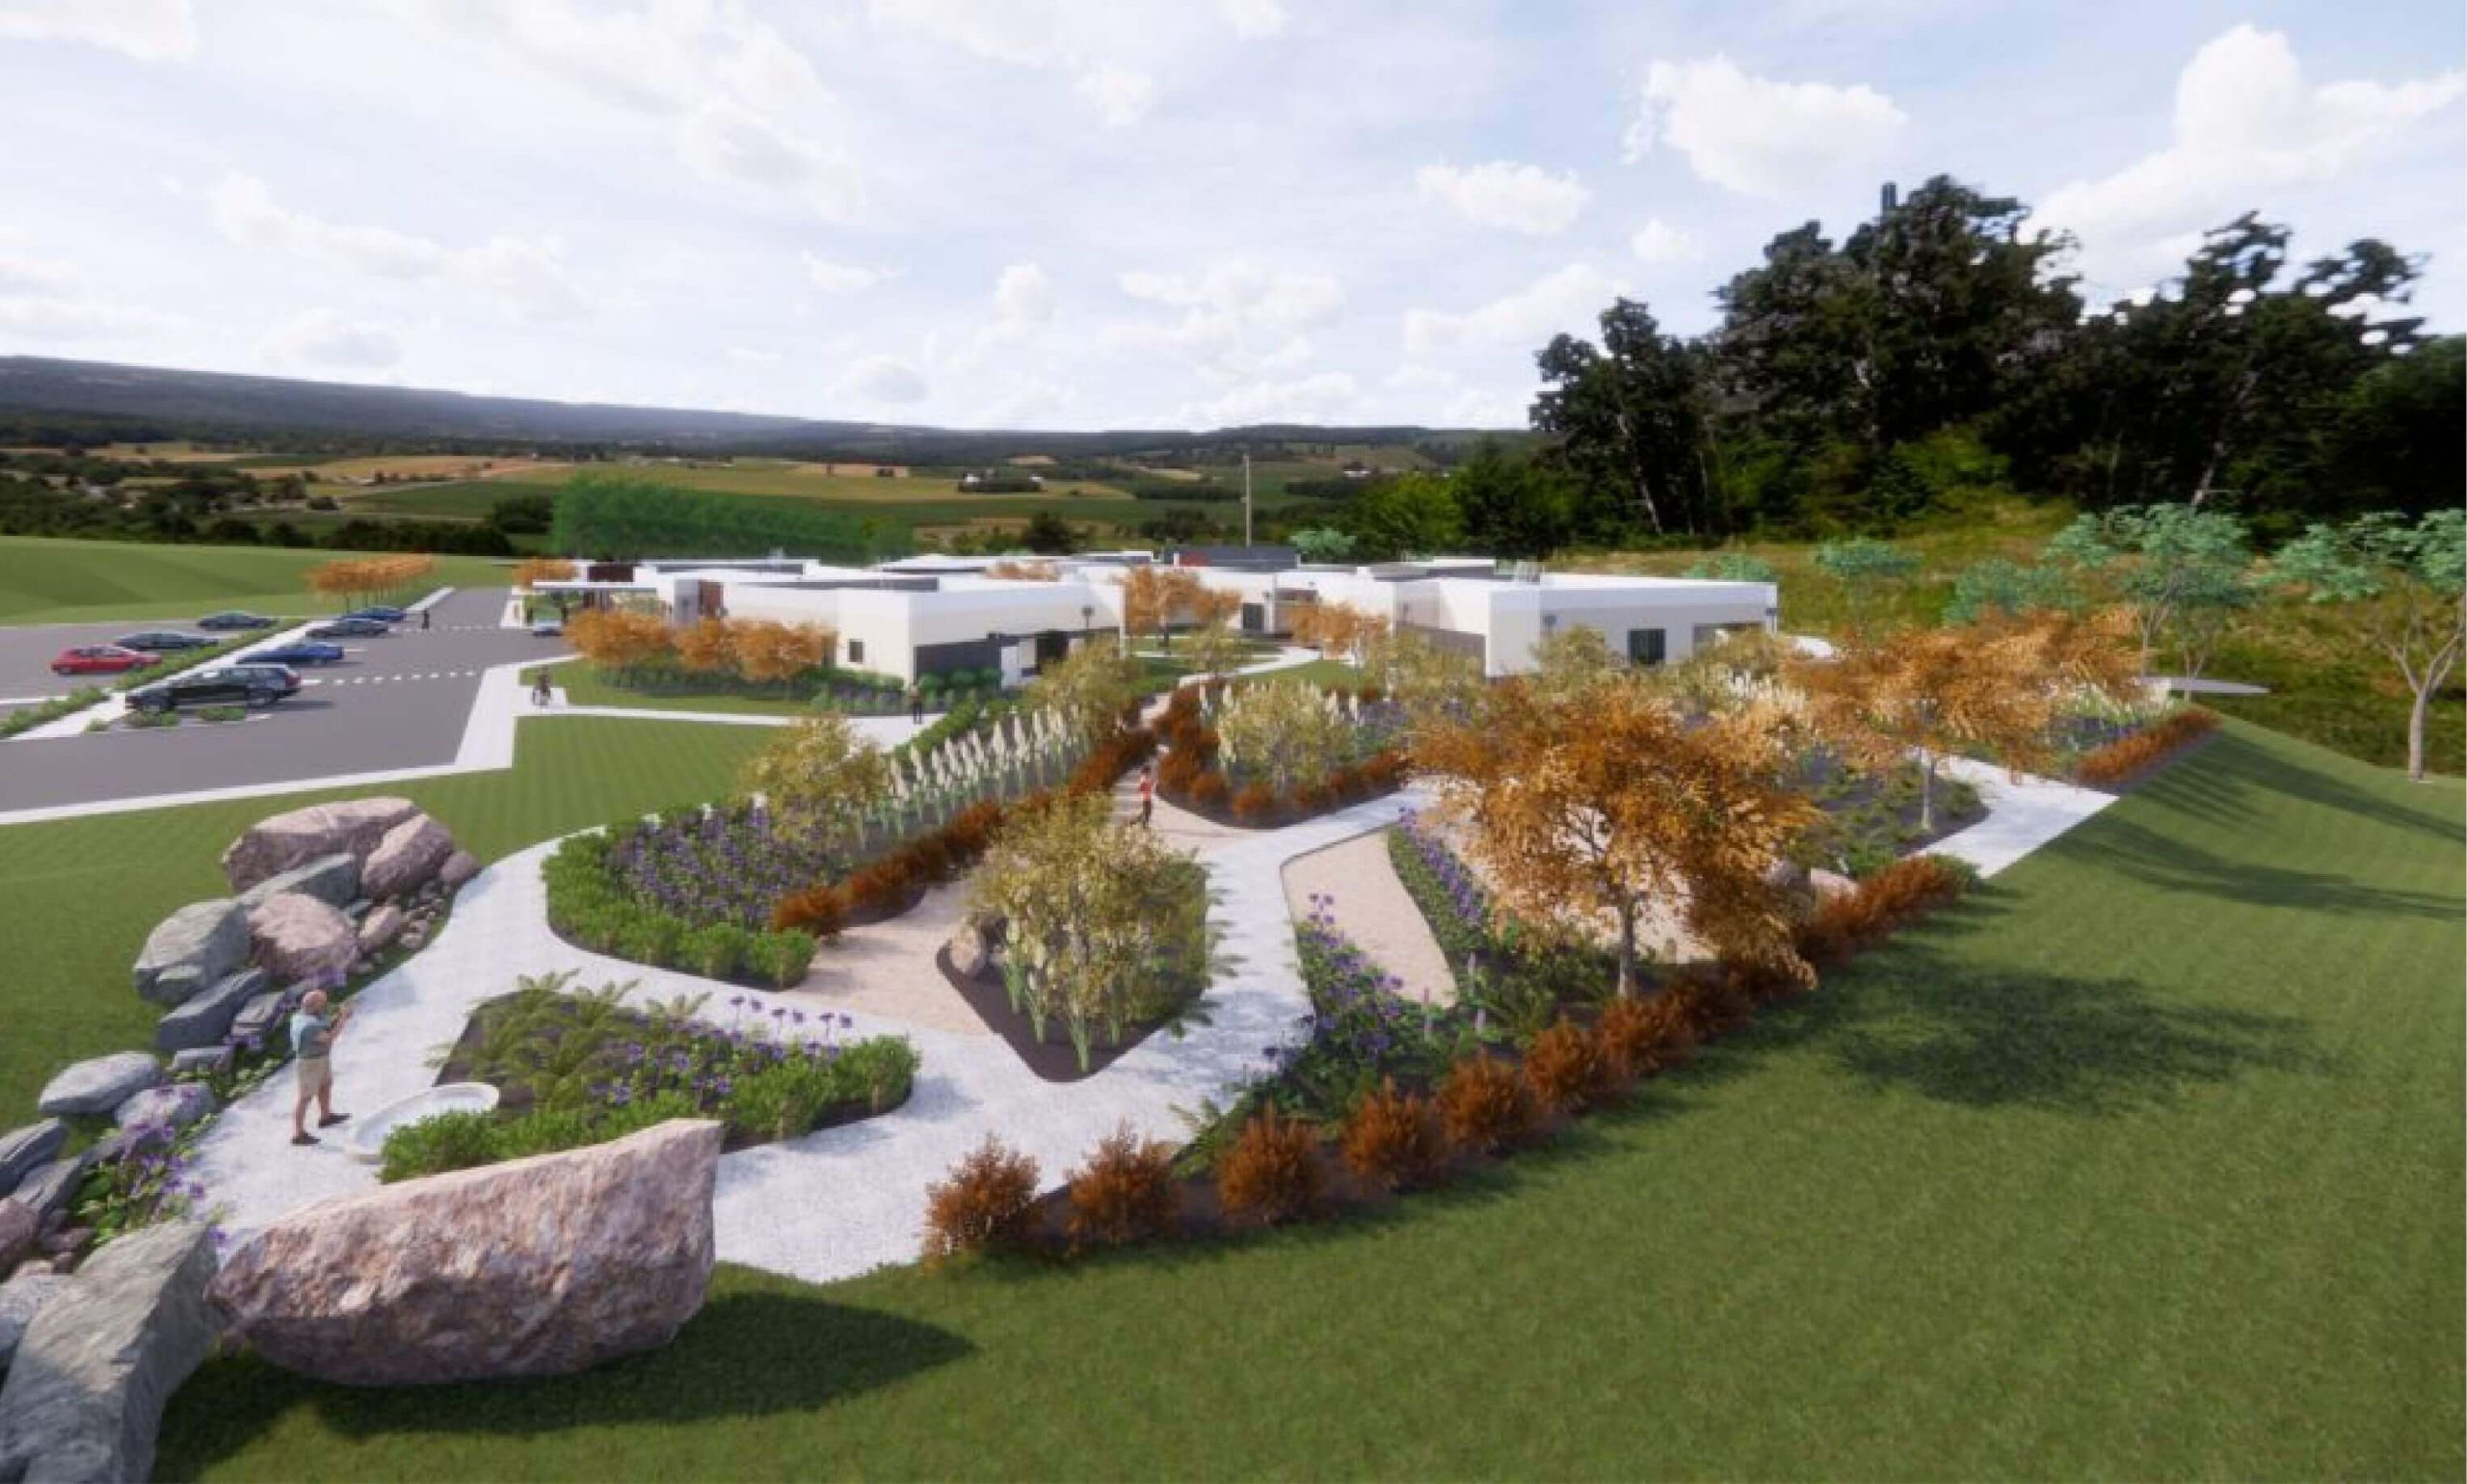 Artist impression of the building and grounds of the new Anam Cara